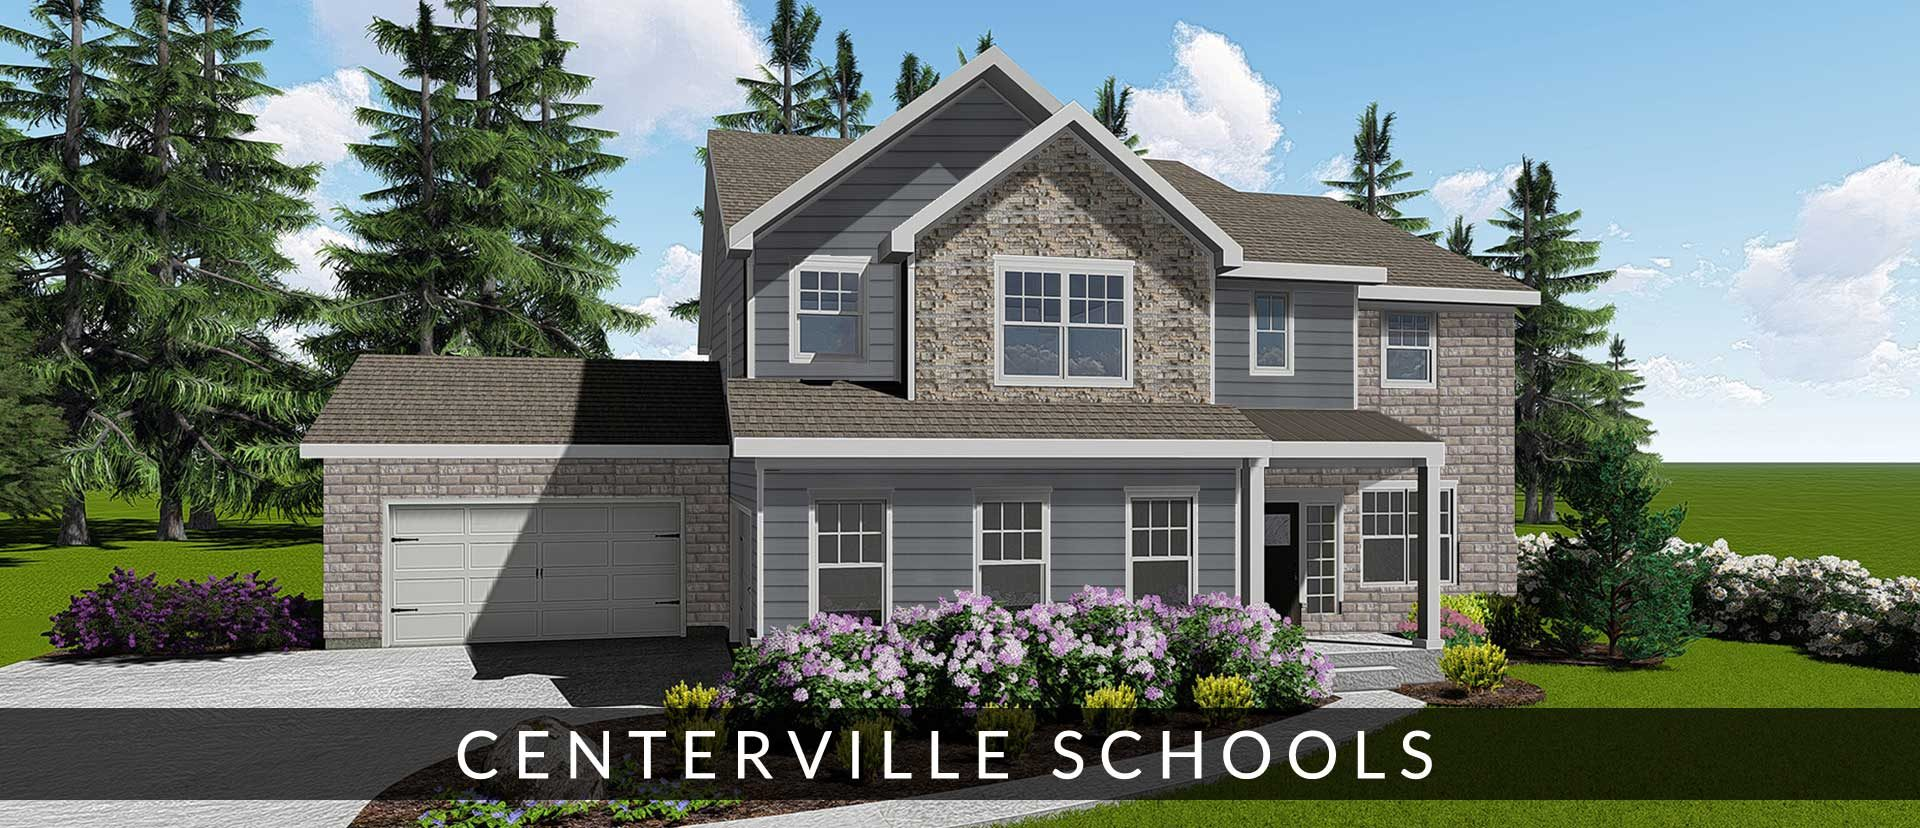 new homes for sale in Centerville